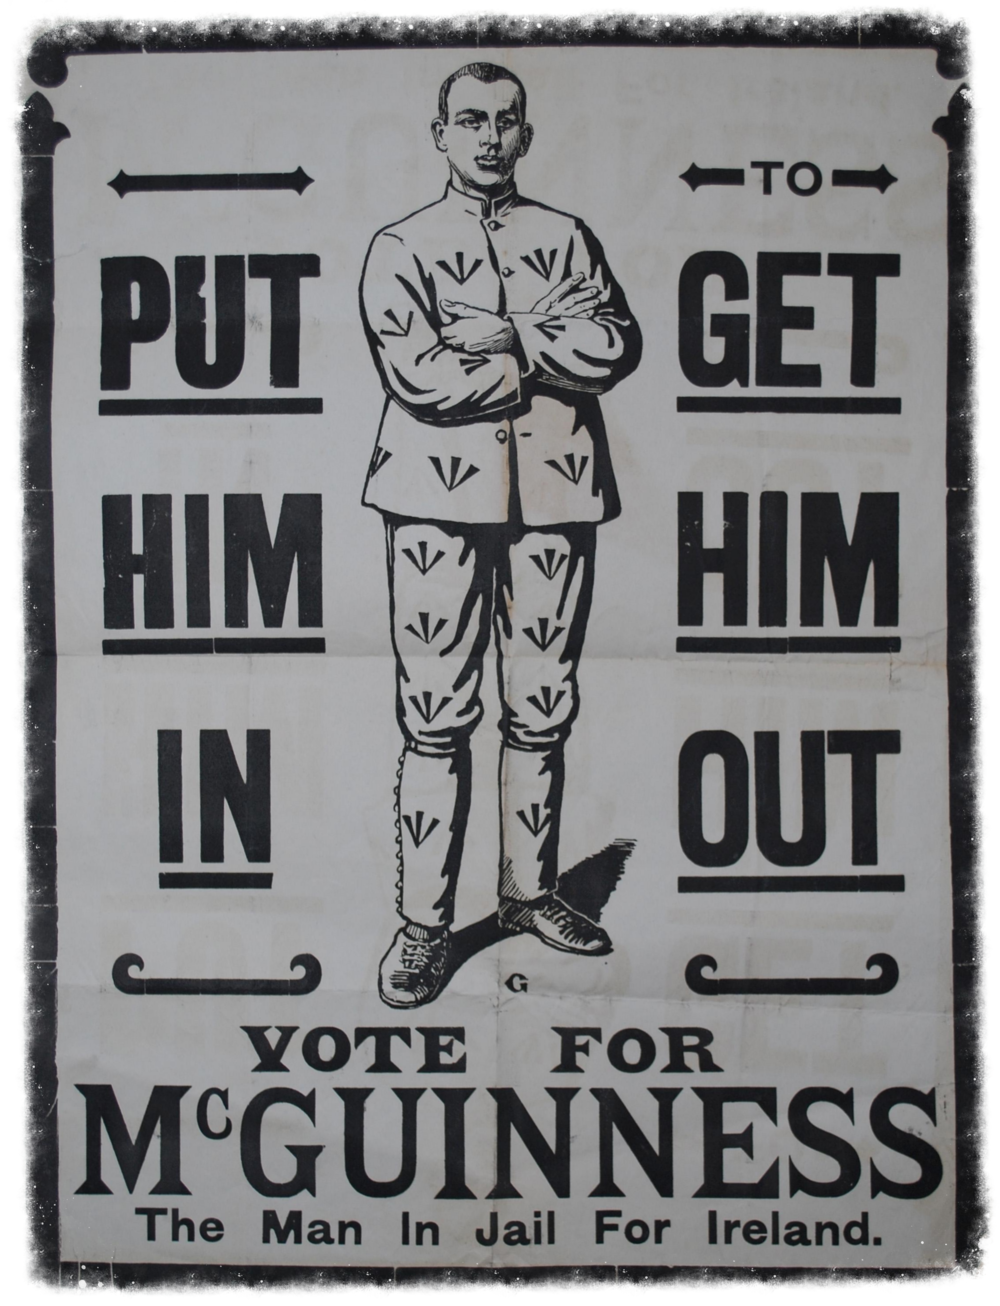 A 1917 election poster in support of Joe McGuinness.